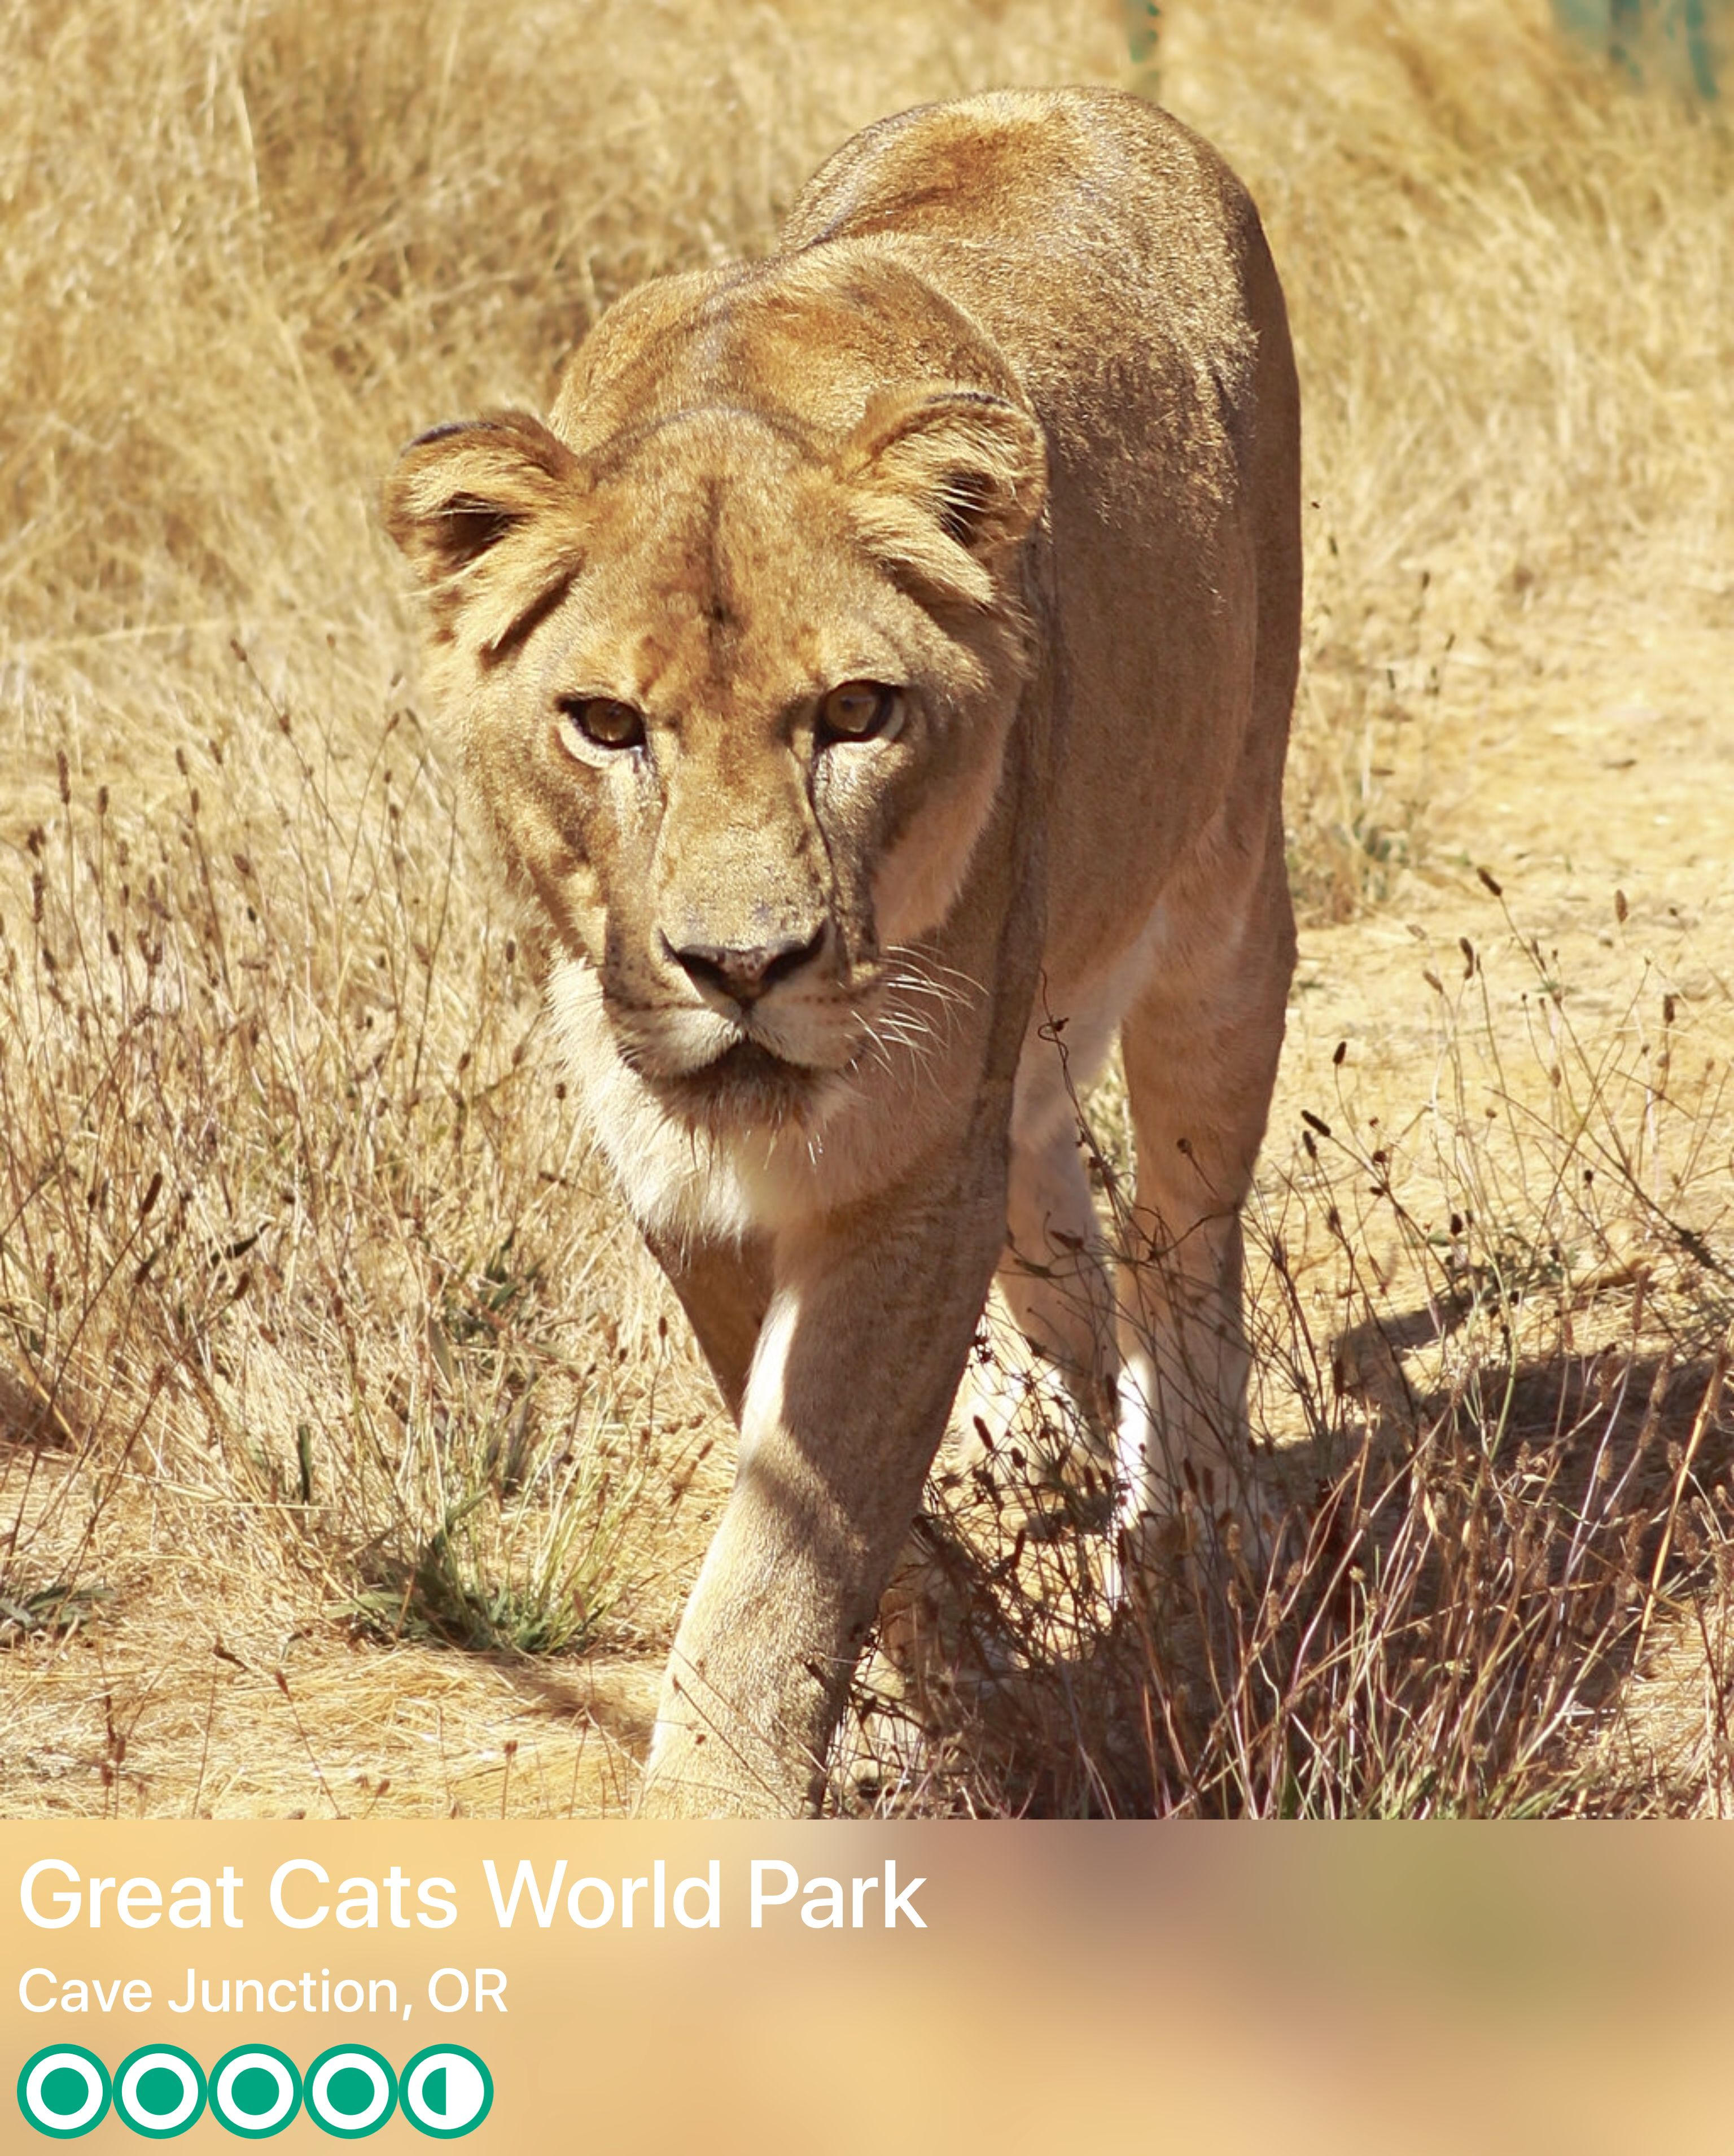 Great Cats Of The World Animal Park Cave Junction Good Reviews Great Cat Cats Animals Of The World